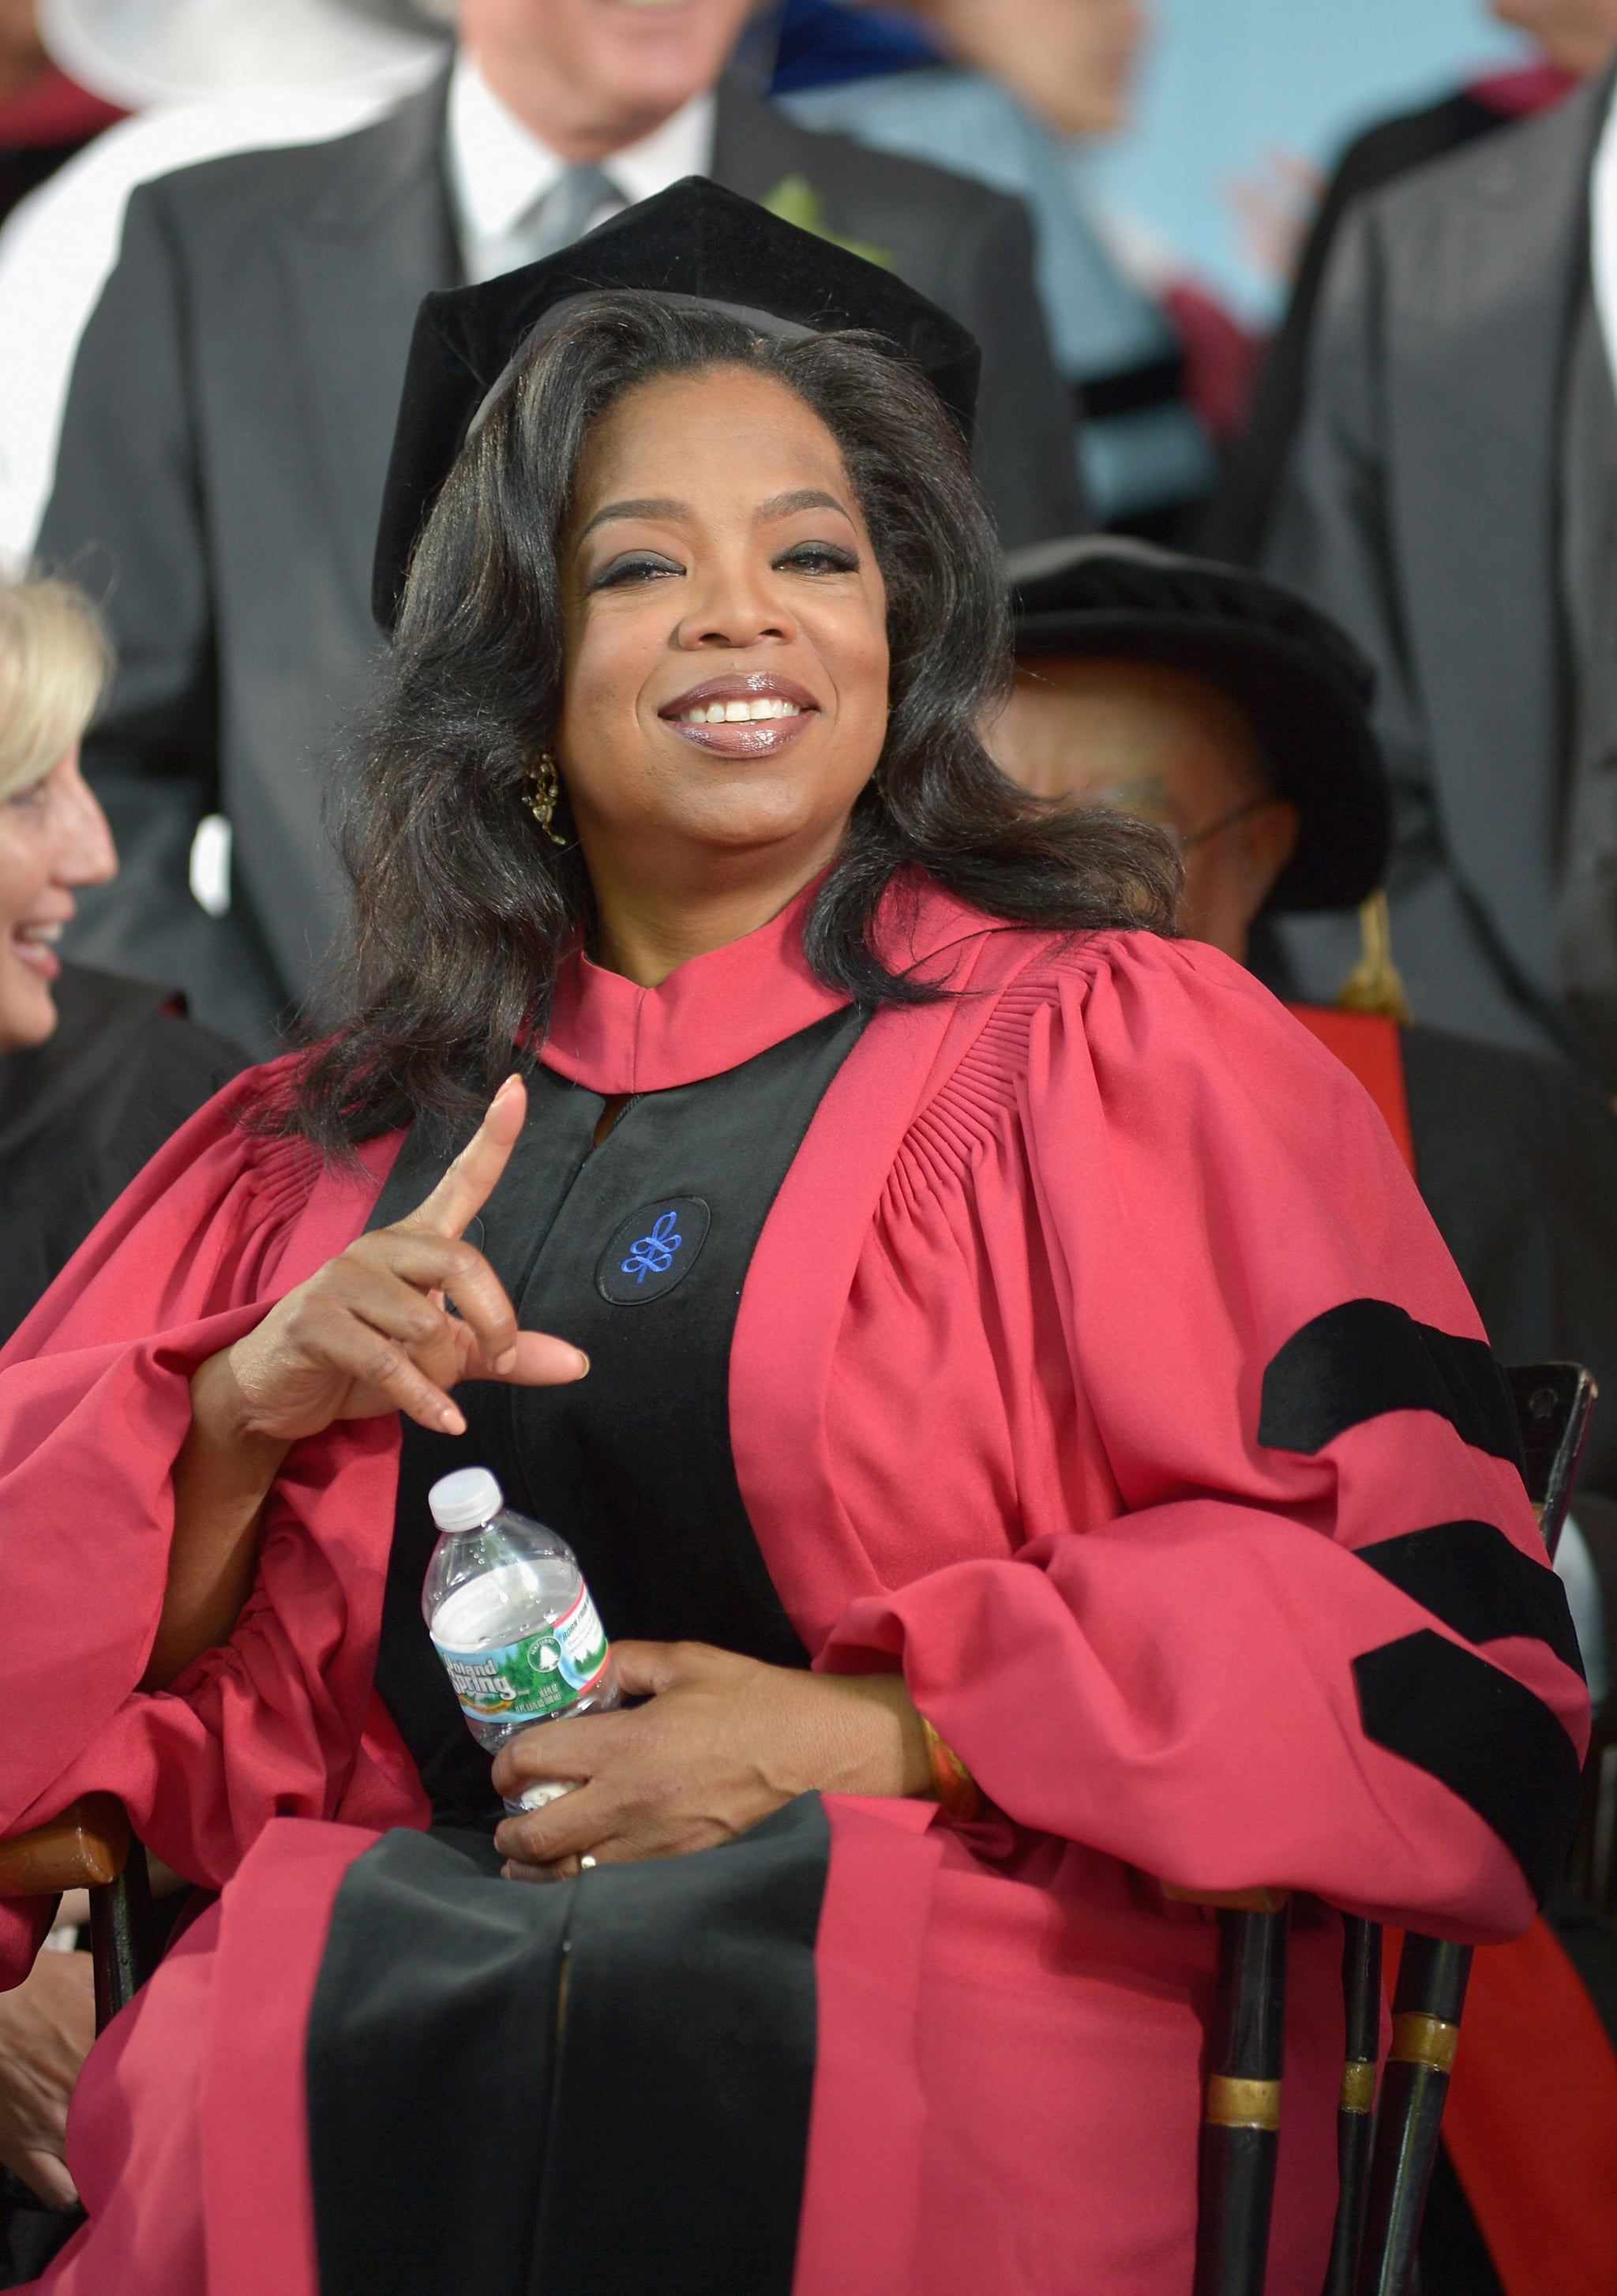 Oprah pointed from her seat while receiving an Honorary Doctor of Laws degree at Harvard University in 2013.